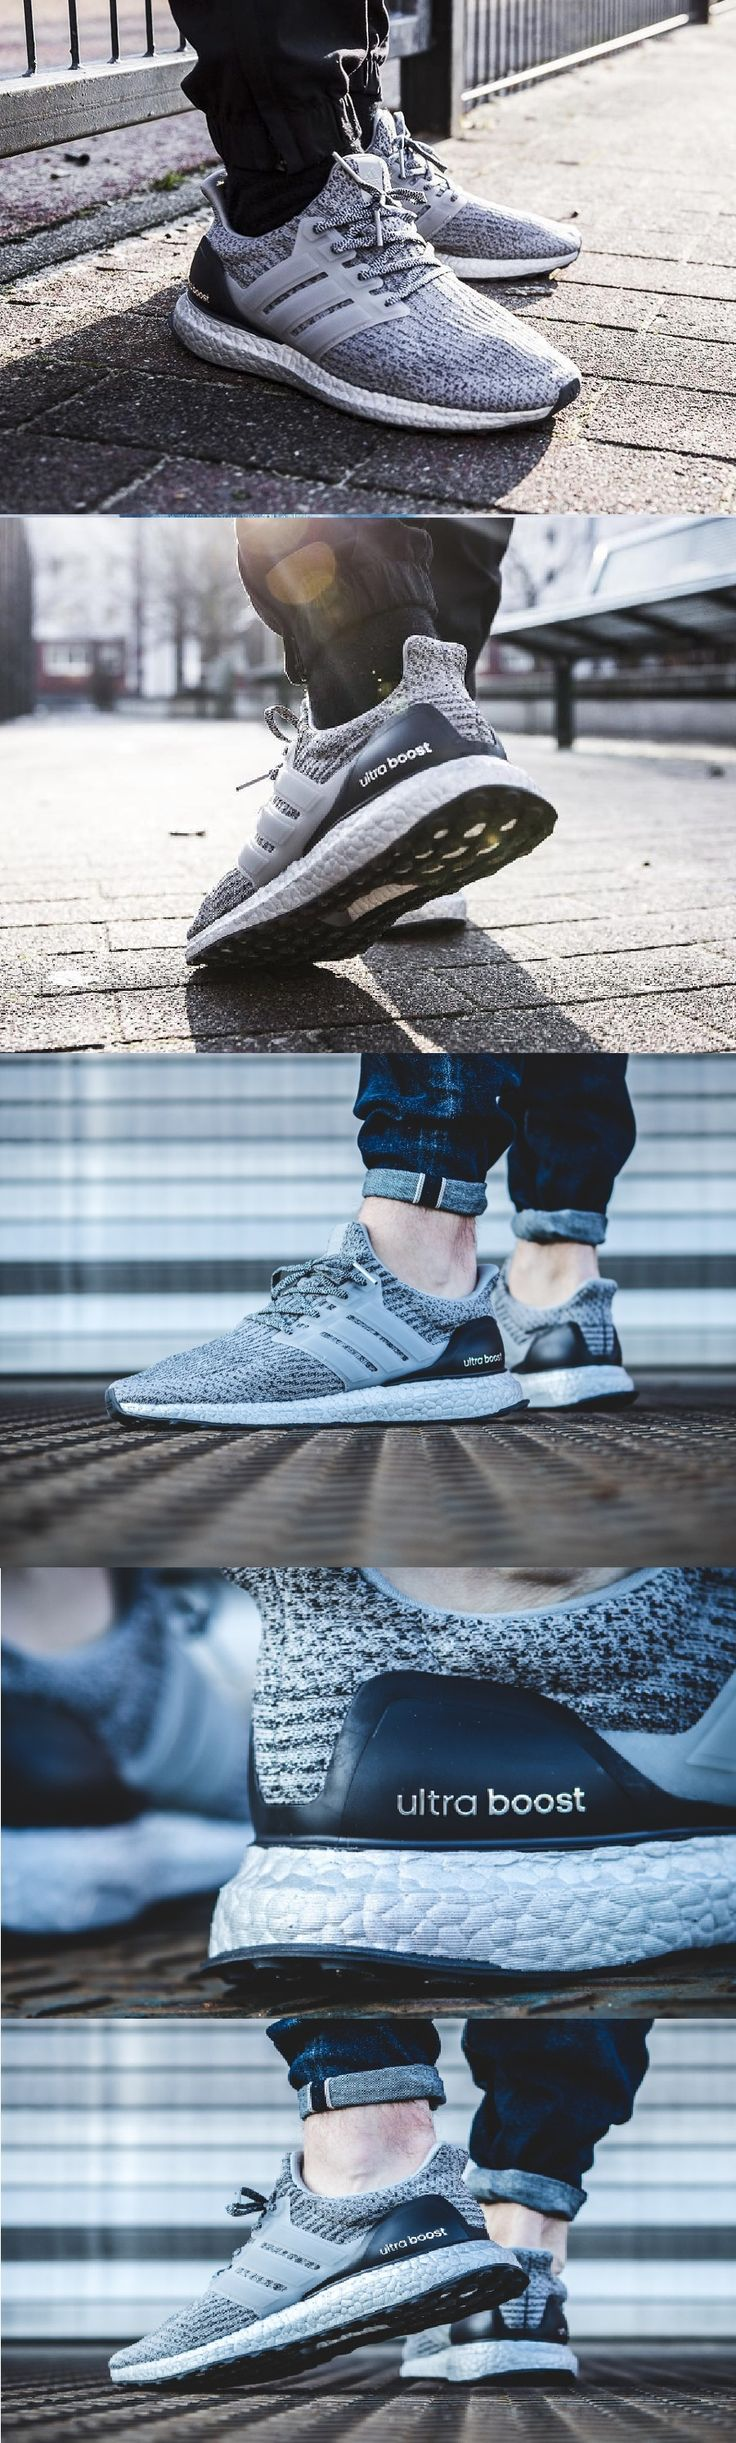 #Adidas Ultra Boost 3.0 #SilverPack